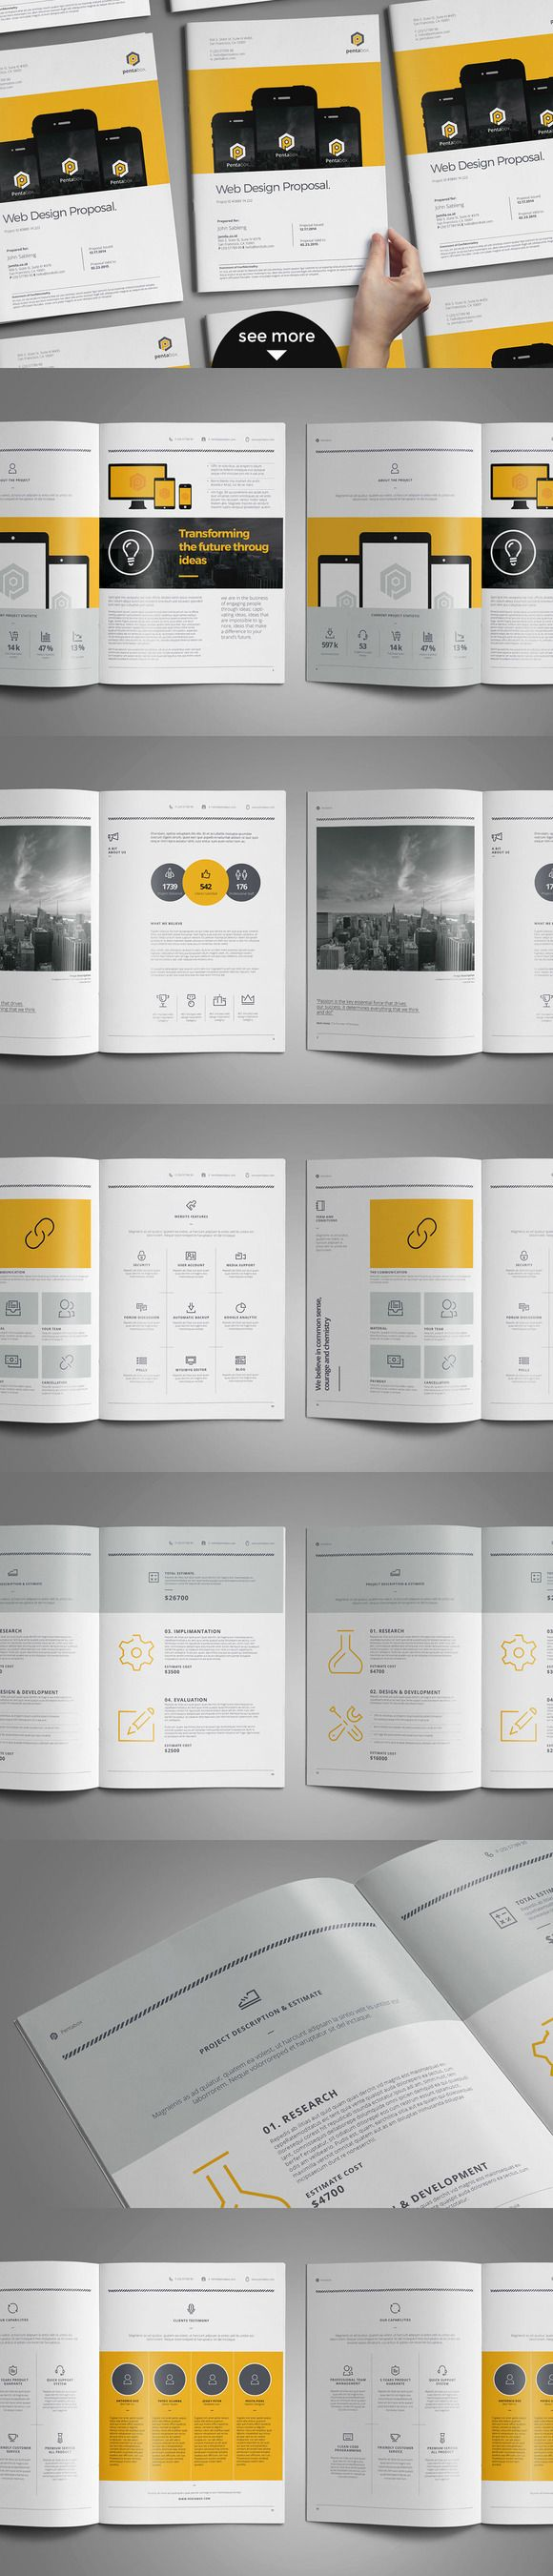 Web Design Proposal by broluthfi on Creative Market